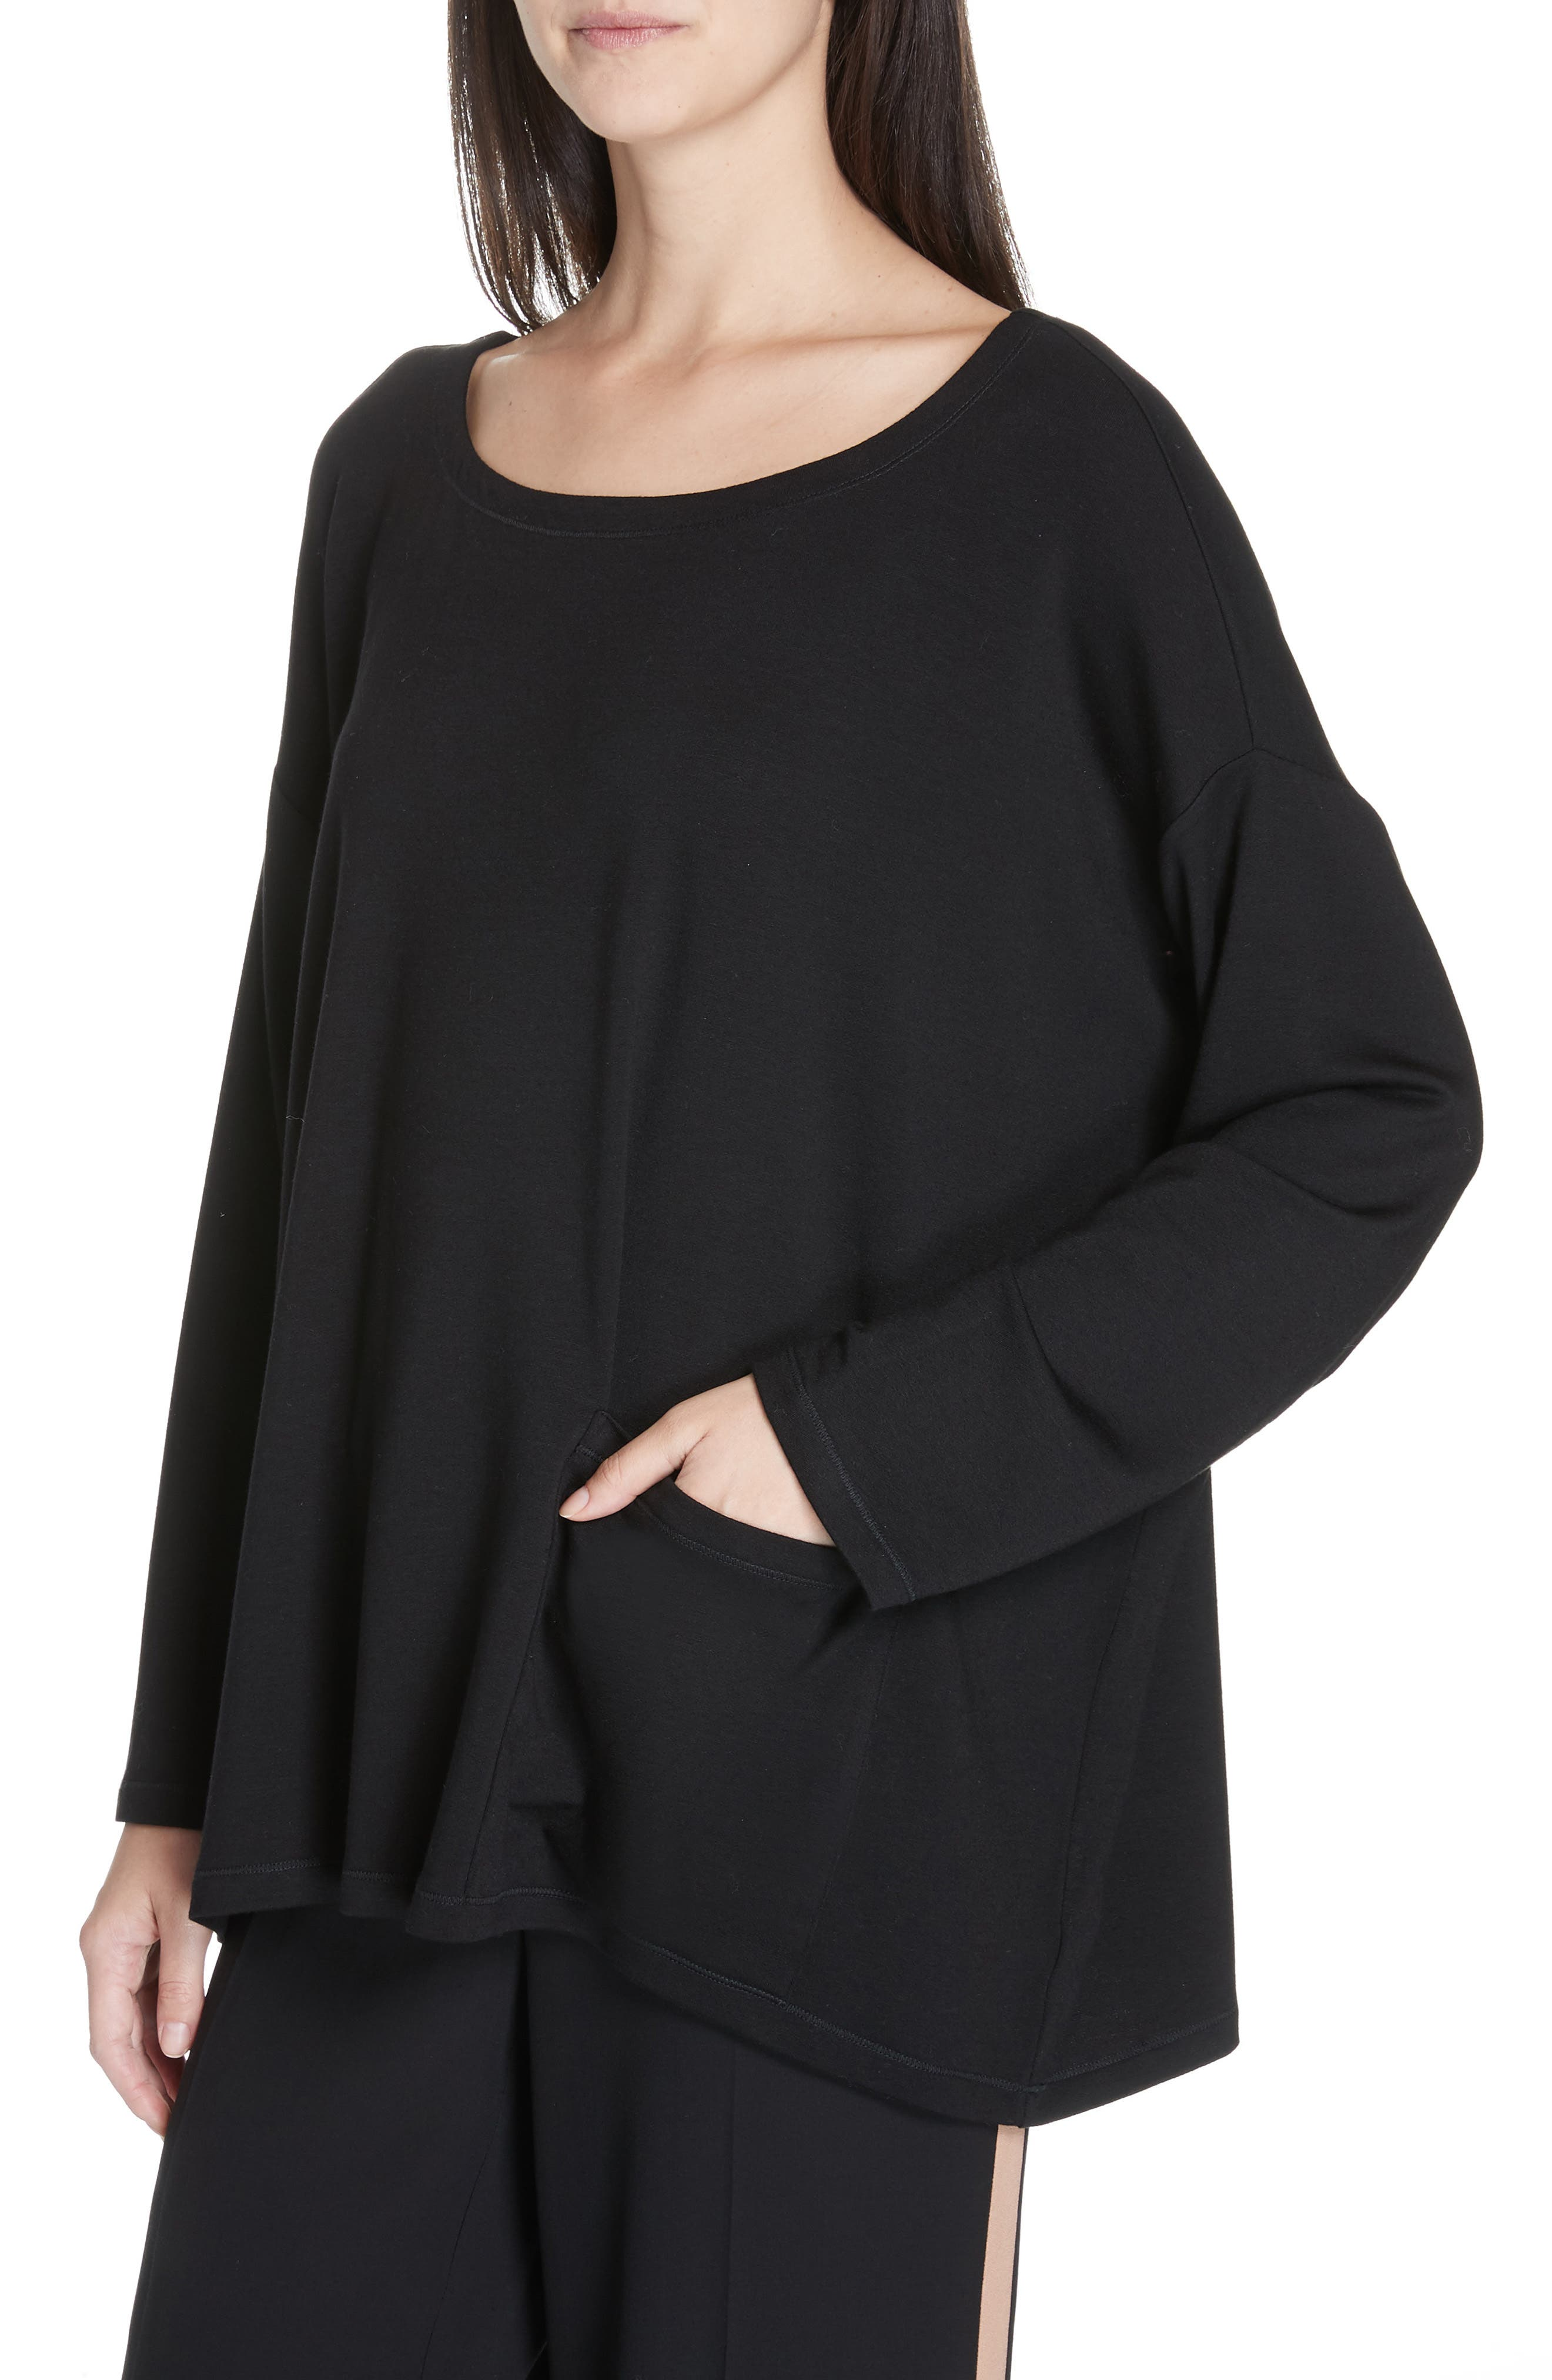 EILEEN FISHER, Stretch Terry Top, Alternate thumbnail 4, color, 001